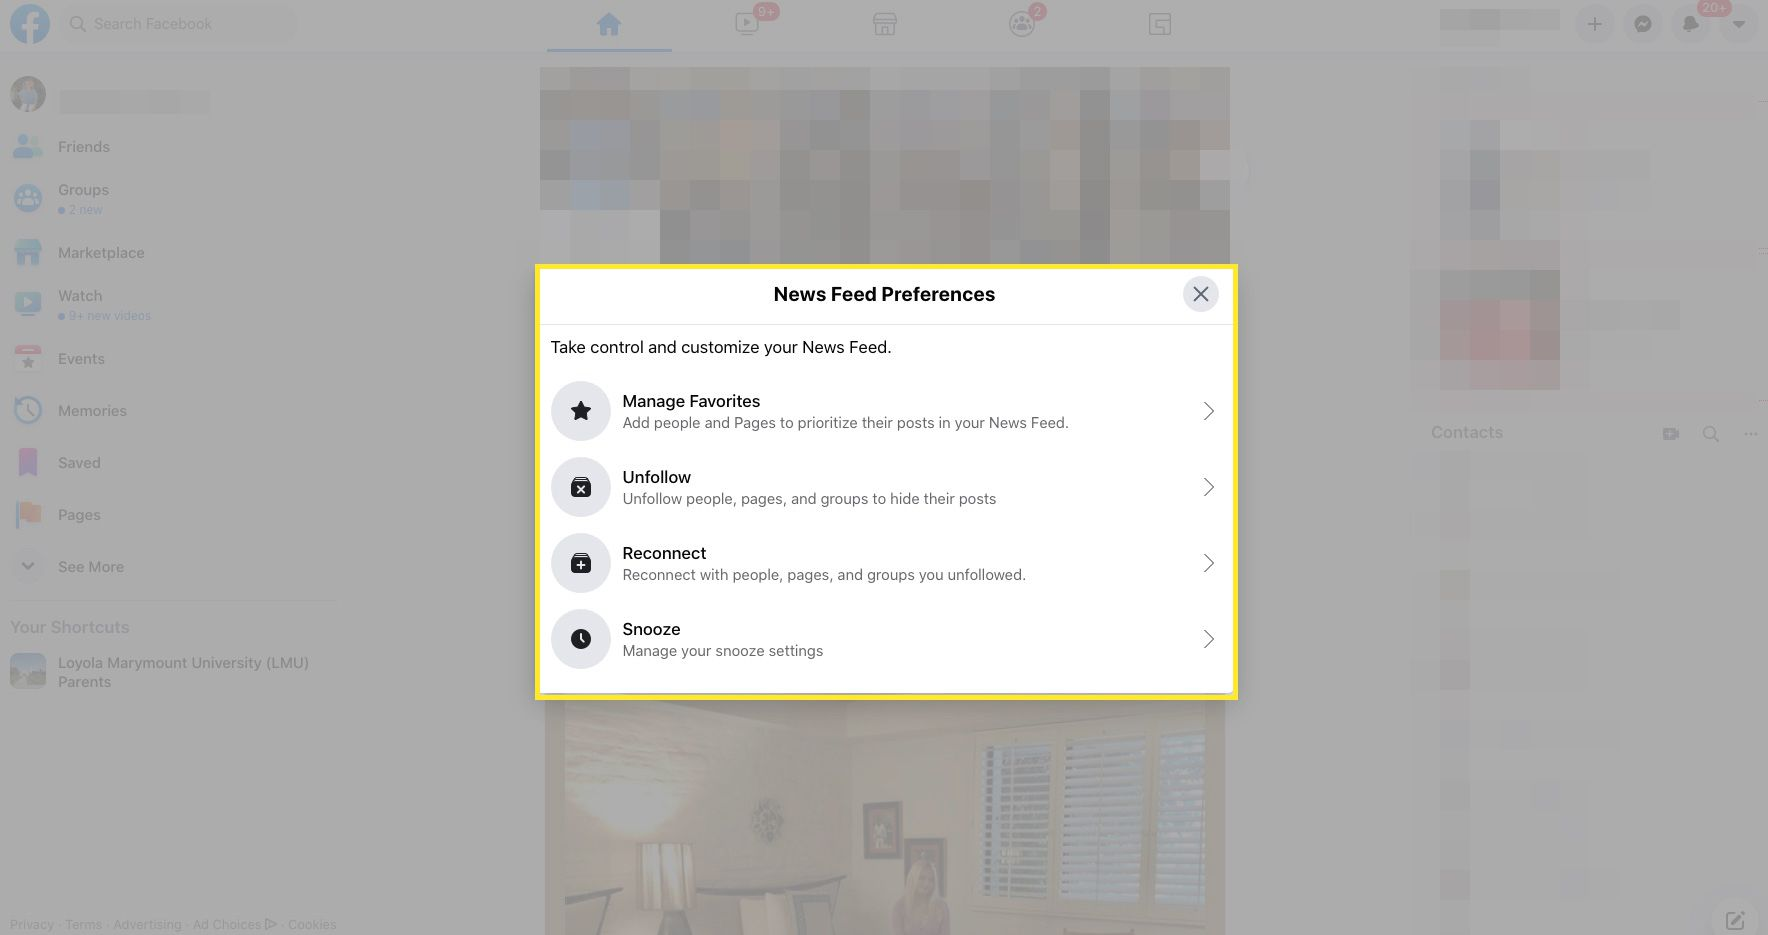 Manage your News Feed Preferences